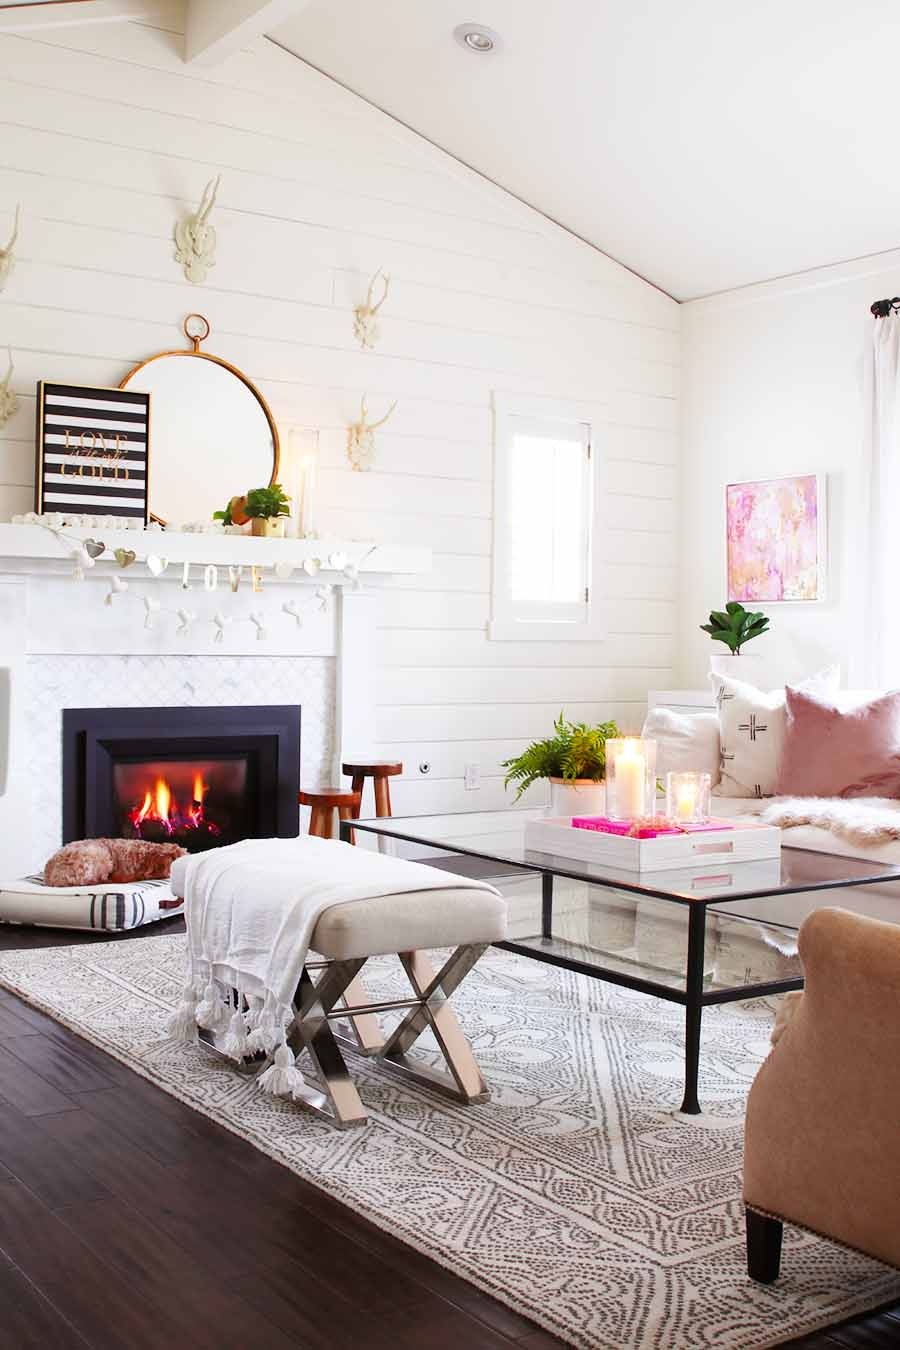 Hygge Lifestyle Guide